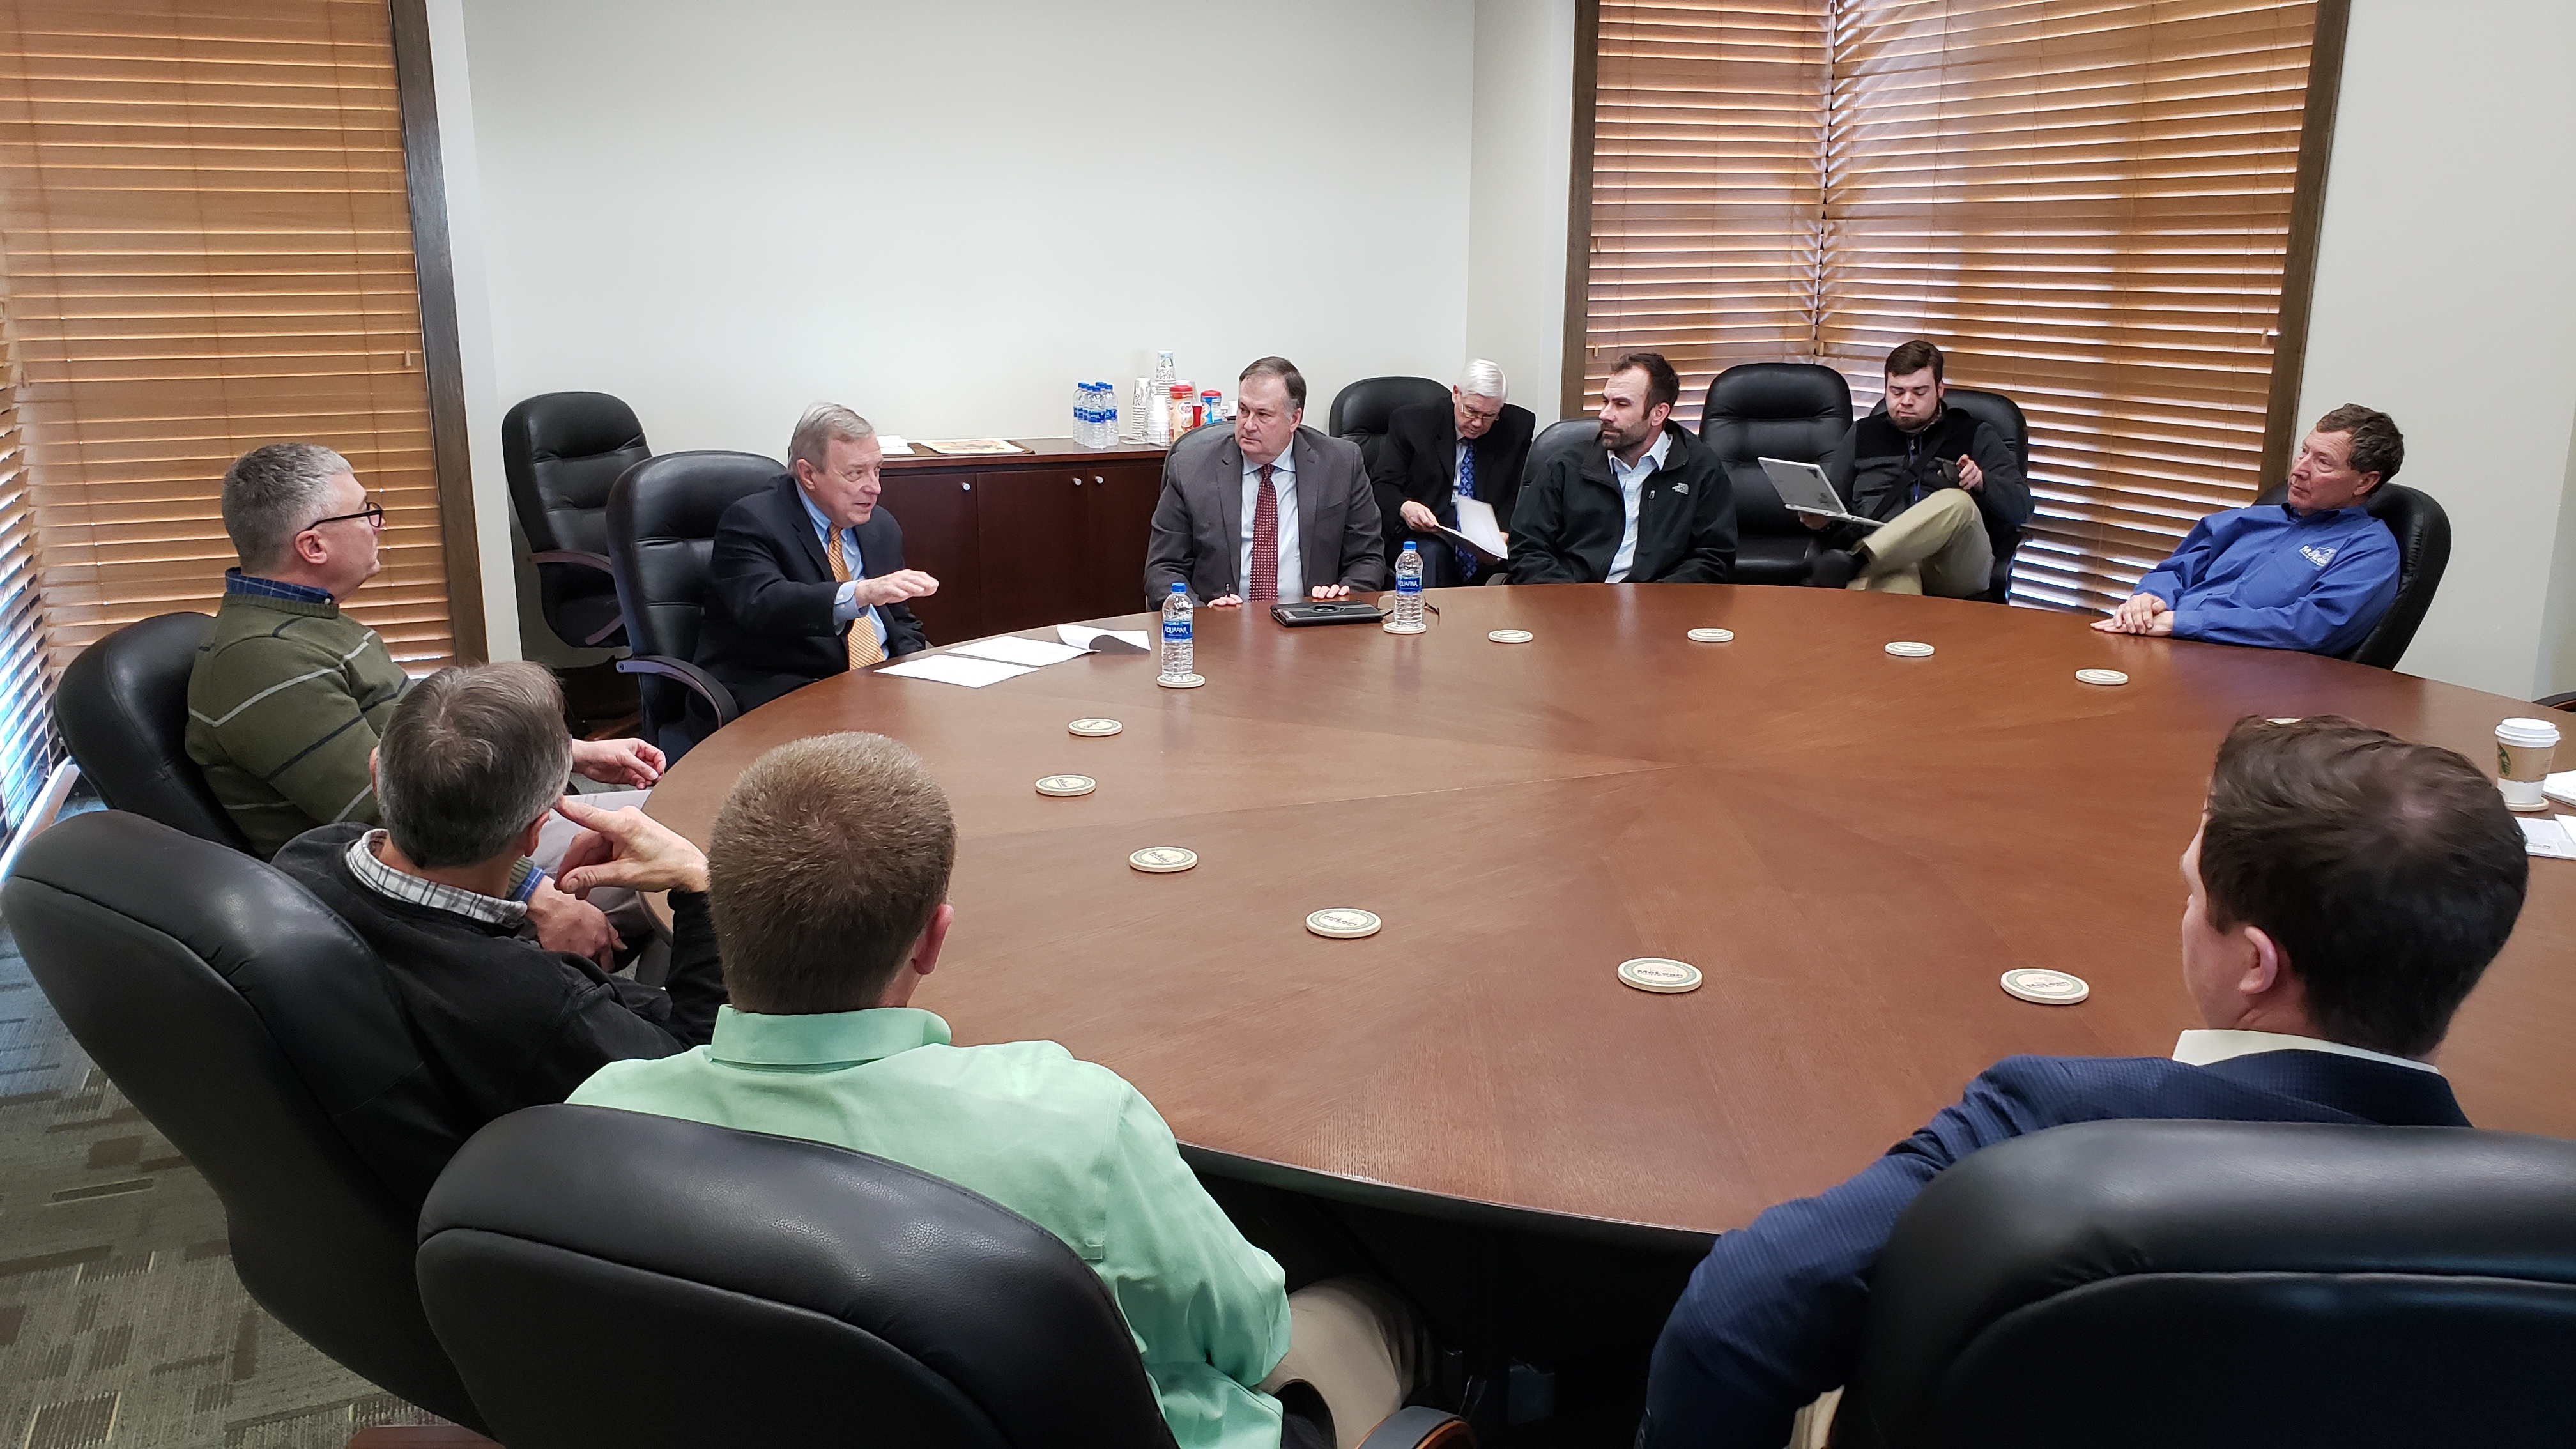 McLean County Farm Bureau hosts U.S. senator visit with Illinois farmers